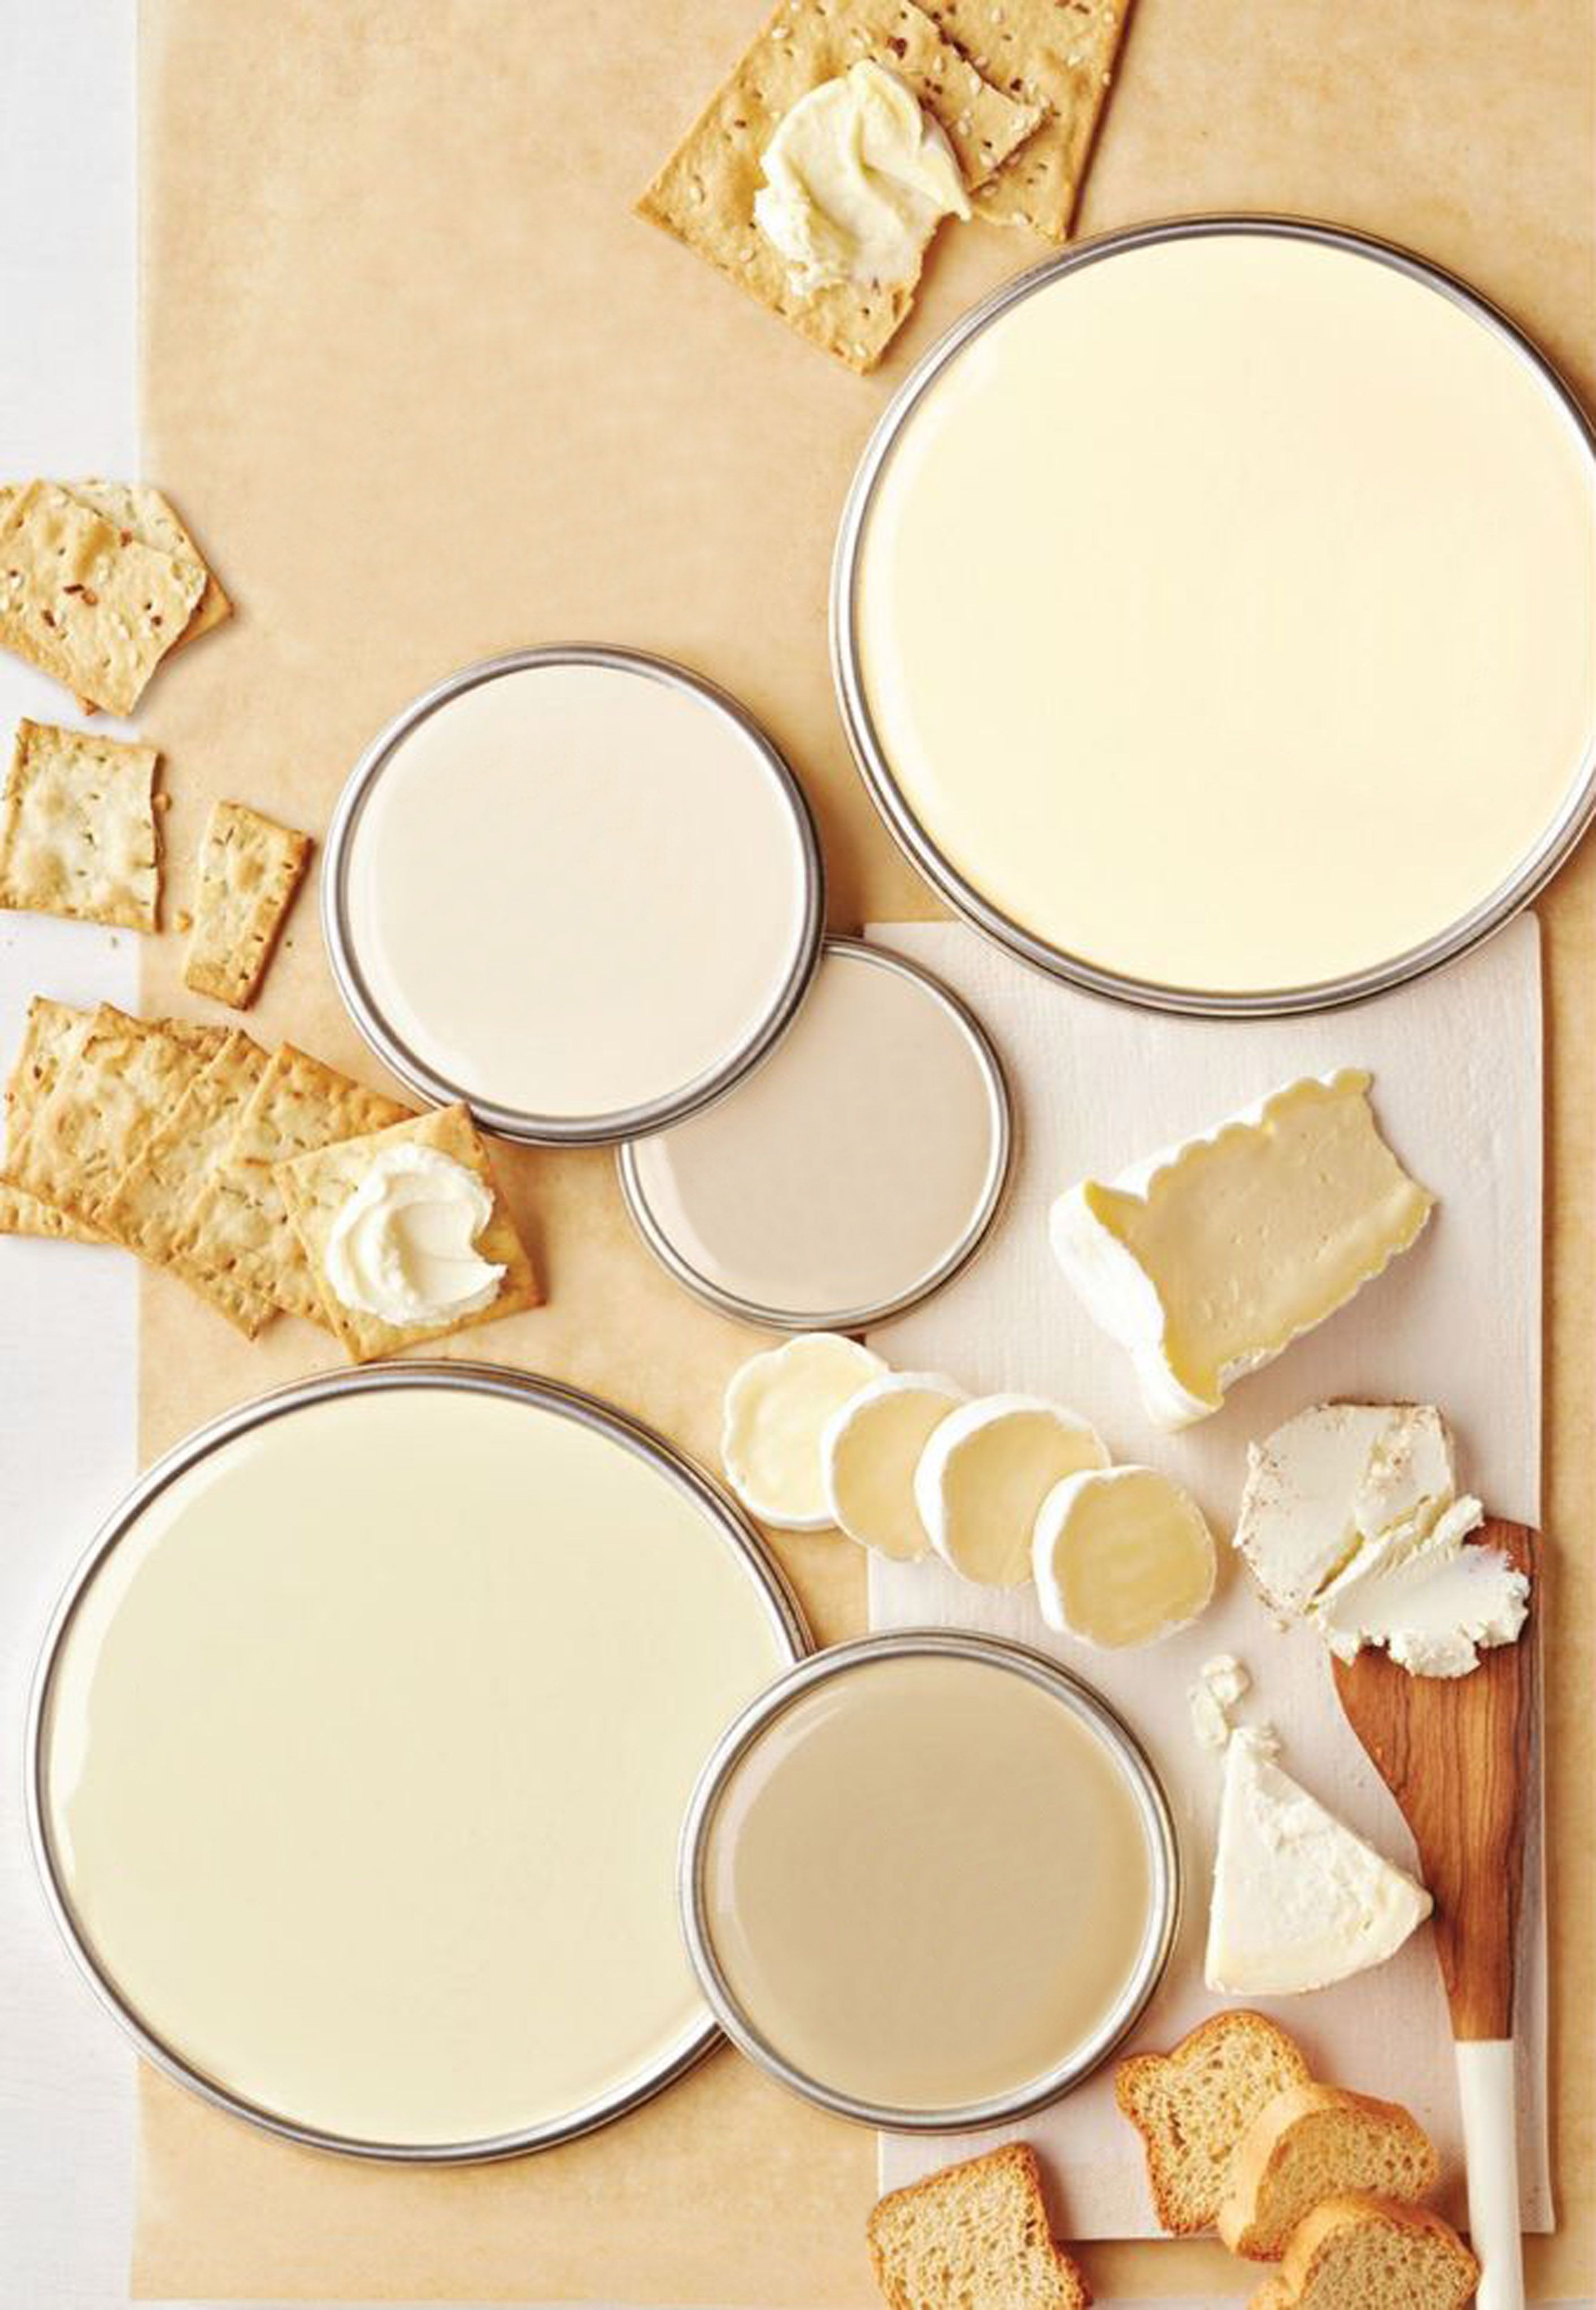 Creamy and Golden | BHG Palettes | Pinterest | House, Decorating and ...